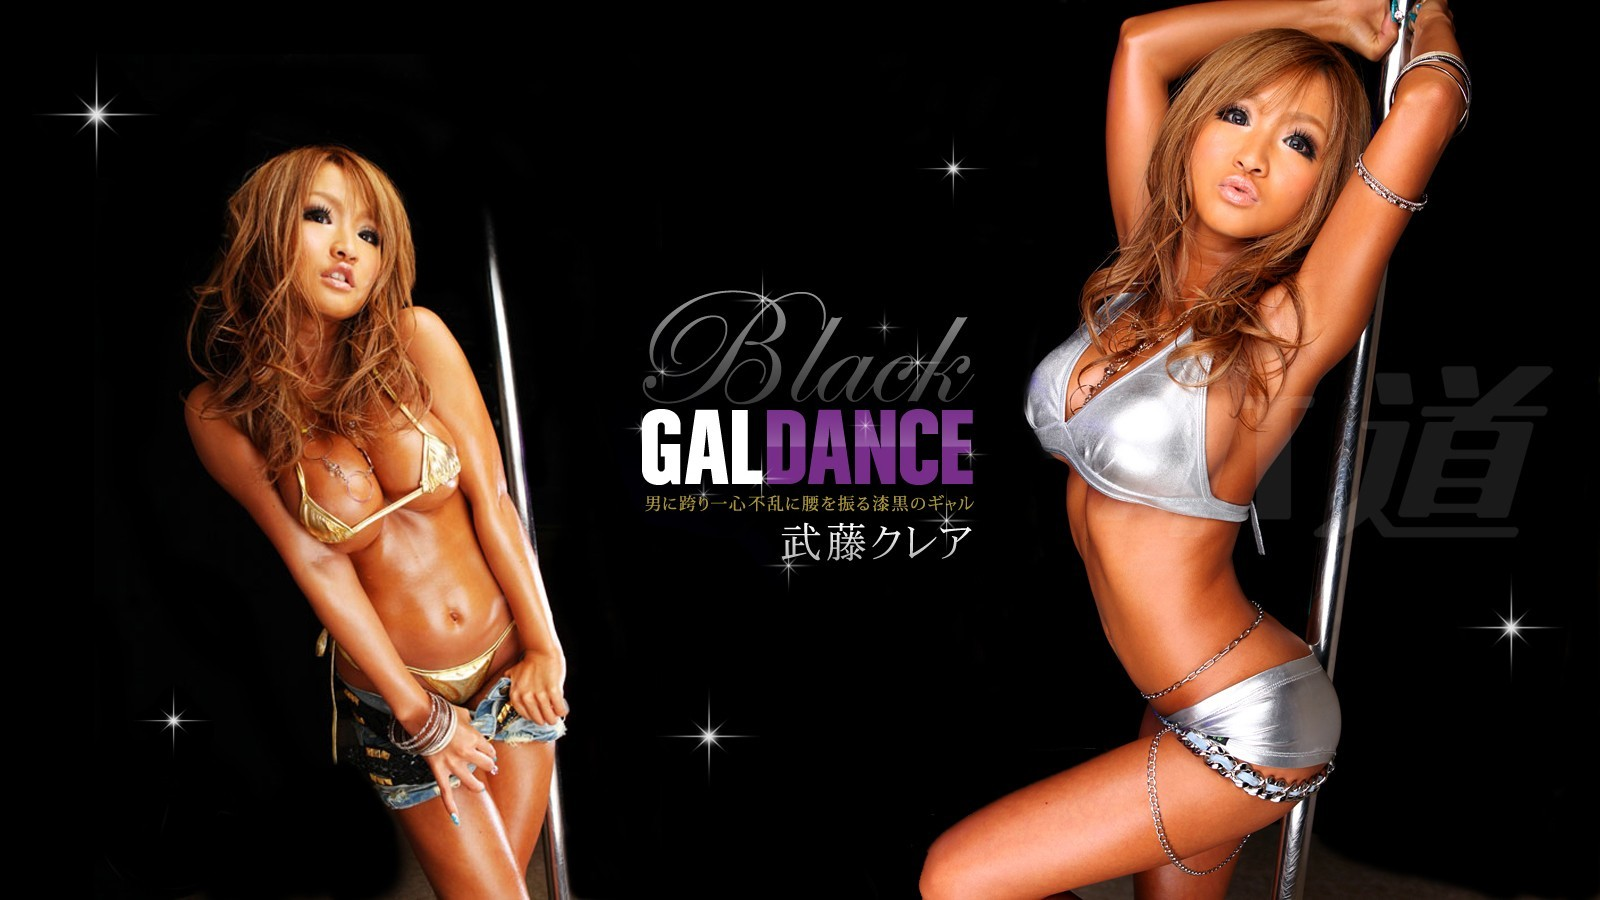 woman black models Japanese HD Wallpaper